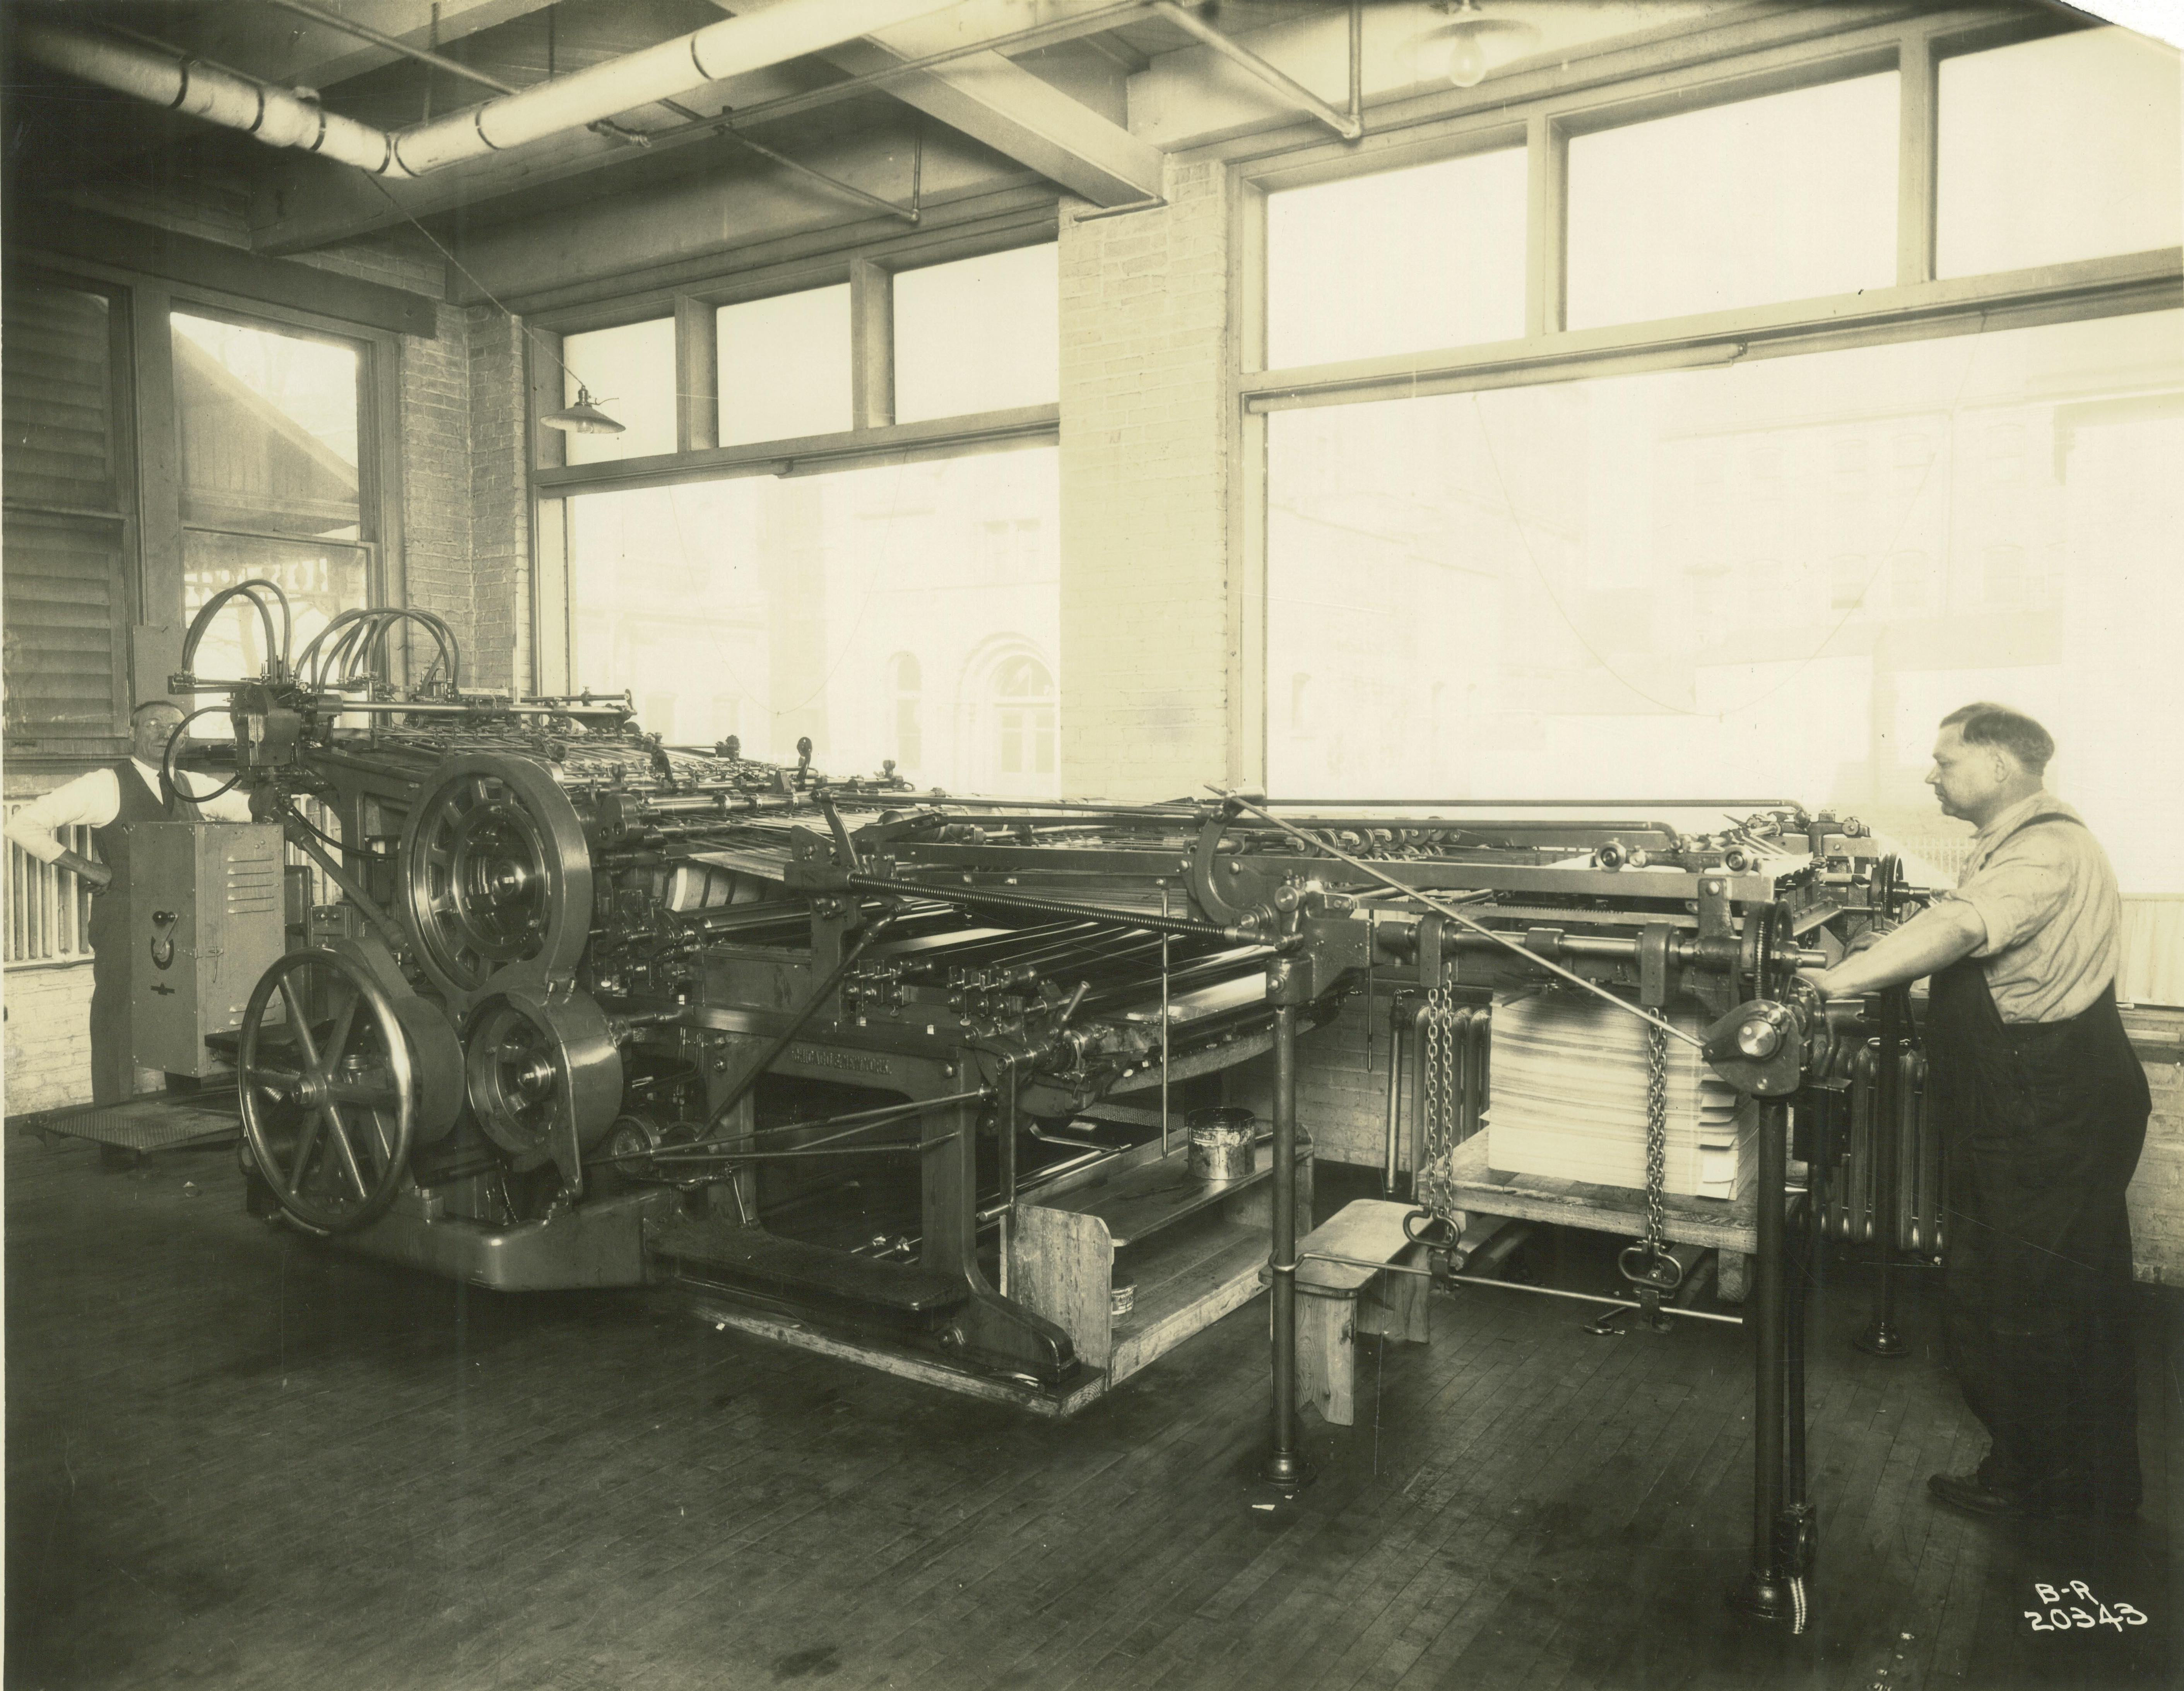 <table class=&quot;lightbox&quot;><tr><td colspan=2 class=&quot;lightbox-title&quot;>PrintingIndustry_02</td></tr><tr><td colspan=2 class=&quot;lightbox-caption&quot;>Worker operates a specialized printing press at the Krueger Printing Company. </td></tr><tr><td colspan=2 class=&quot;lightbox-spacer&quot;></td></tr><tr class=&quot;lightbox-detail&quot;><td class=&quot;cell-title&quot;>Source: </td><td class=&quot;cell-value&quot;>From the Historic Photo Collection of the Milwaukee Public Library. Reprinted with permission. <br /><a href=&quot;http://content.mpl.org/cdm/singleitem/collection/HstoricPho/id/4078/rec/8&quot; target=&quot;_blank&quot;>Milwaukee Public Library</a></td></tr><tr class=&quot;filler-row&quot;><td colspan=2>&nbsp;</td></tr></table>